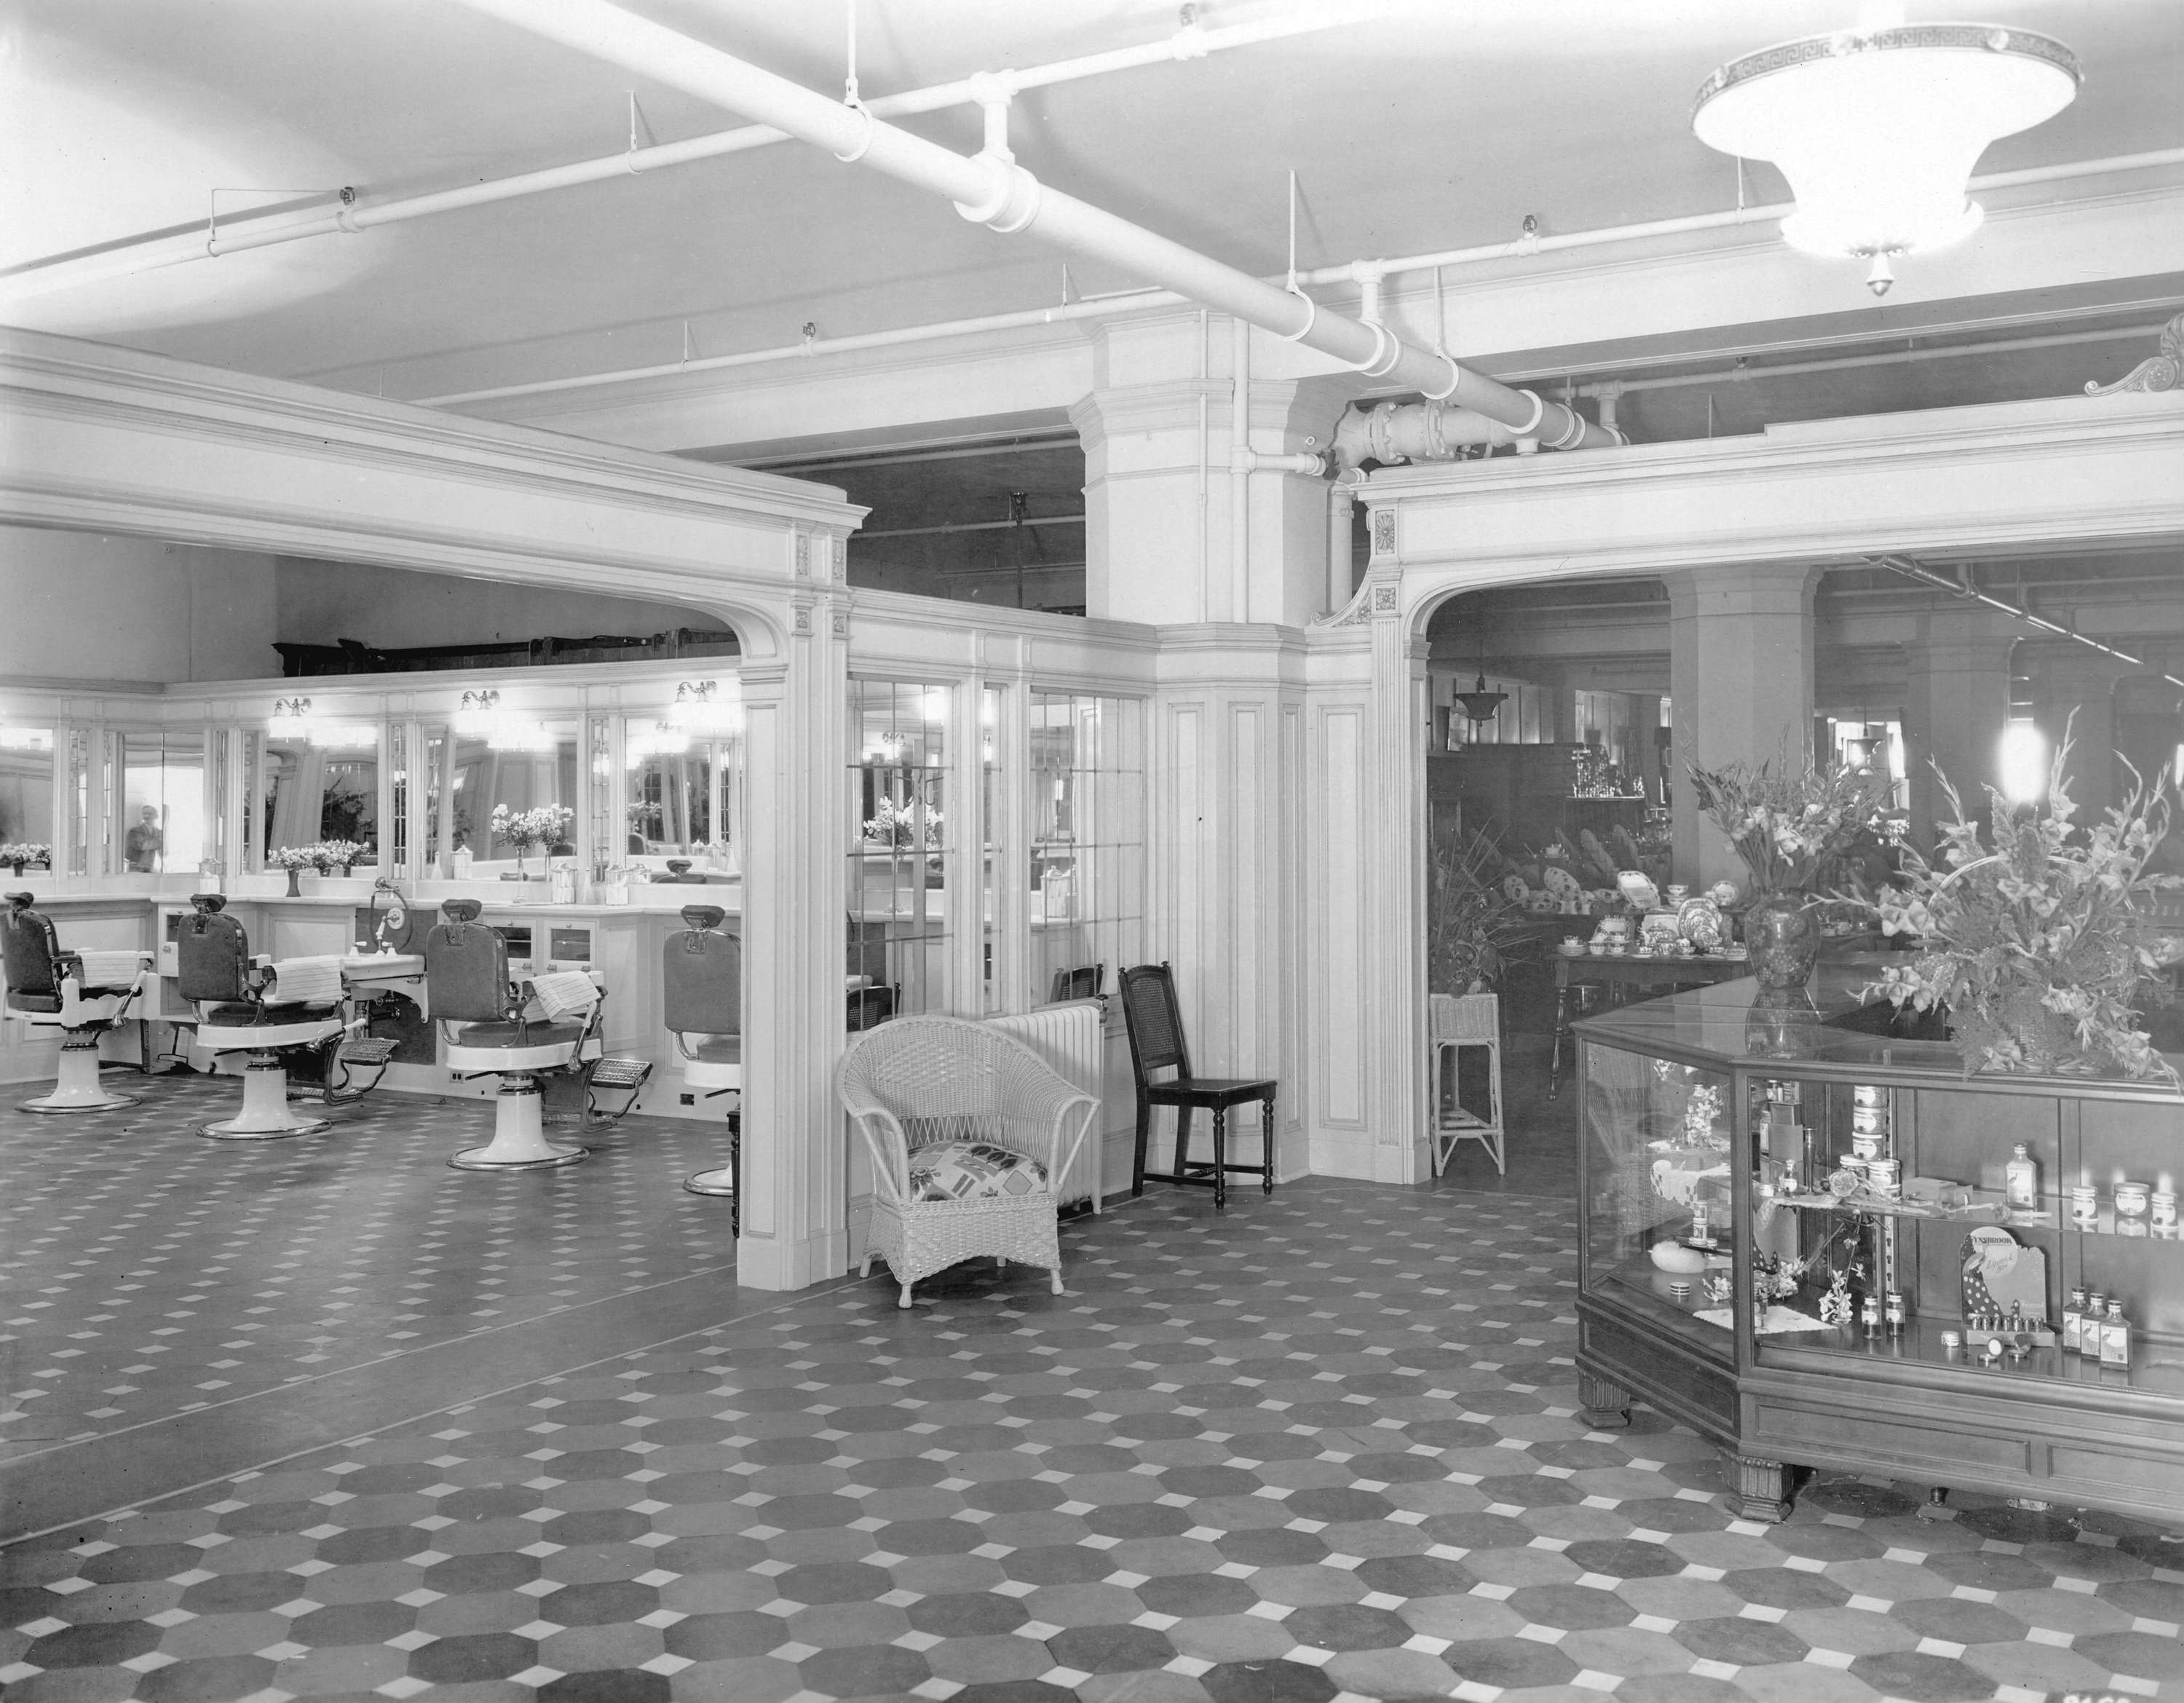 Spencer's Department Store hair salon in the 1930s (Leonard Frank Photos/David Spencer Limited)